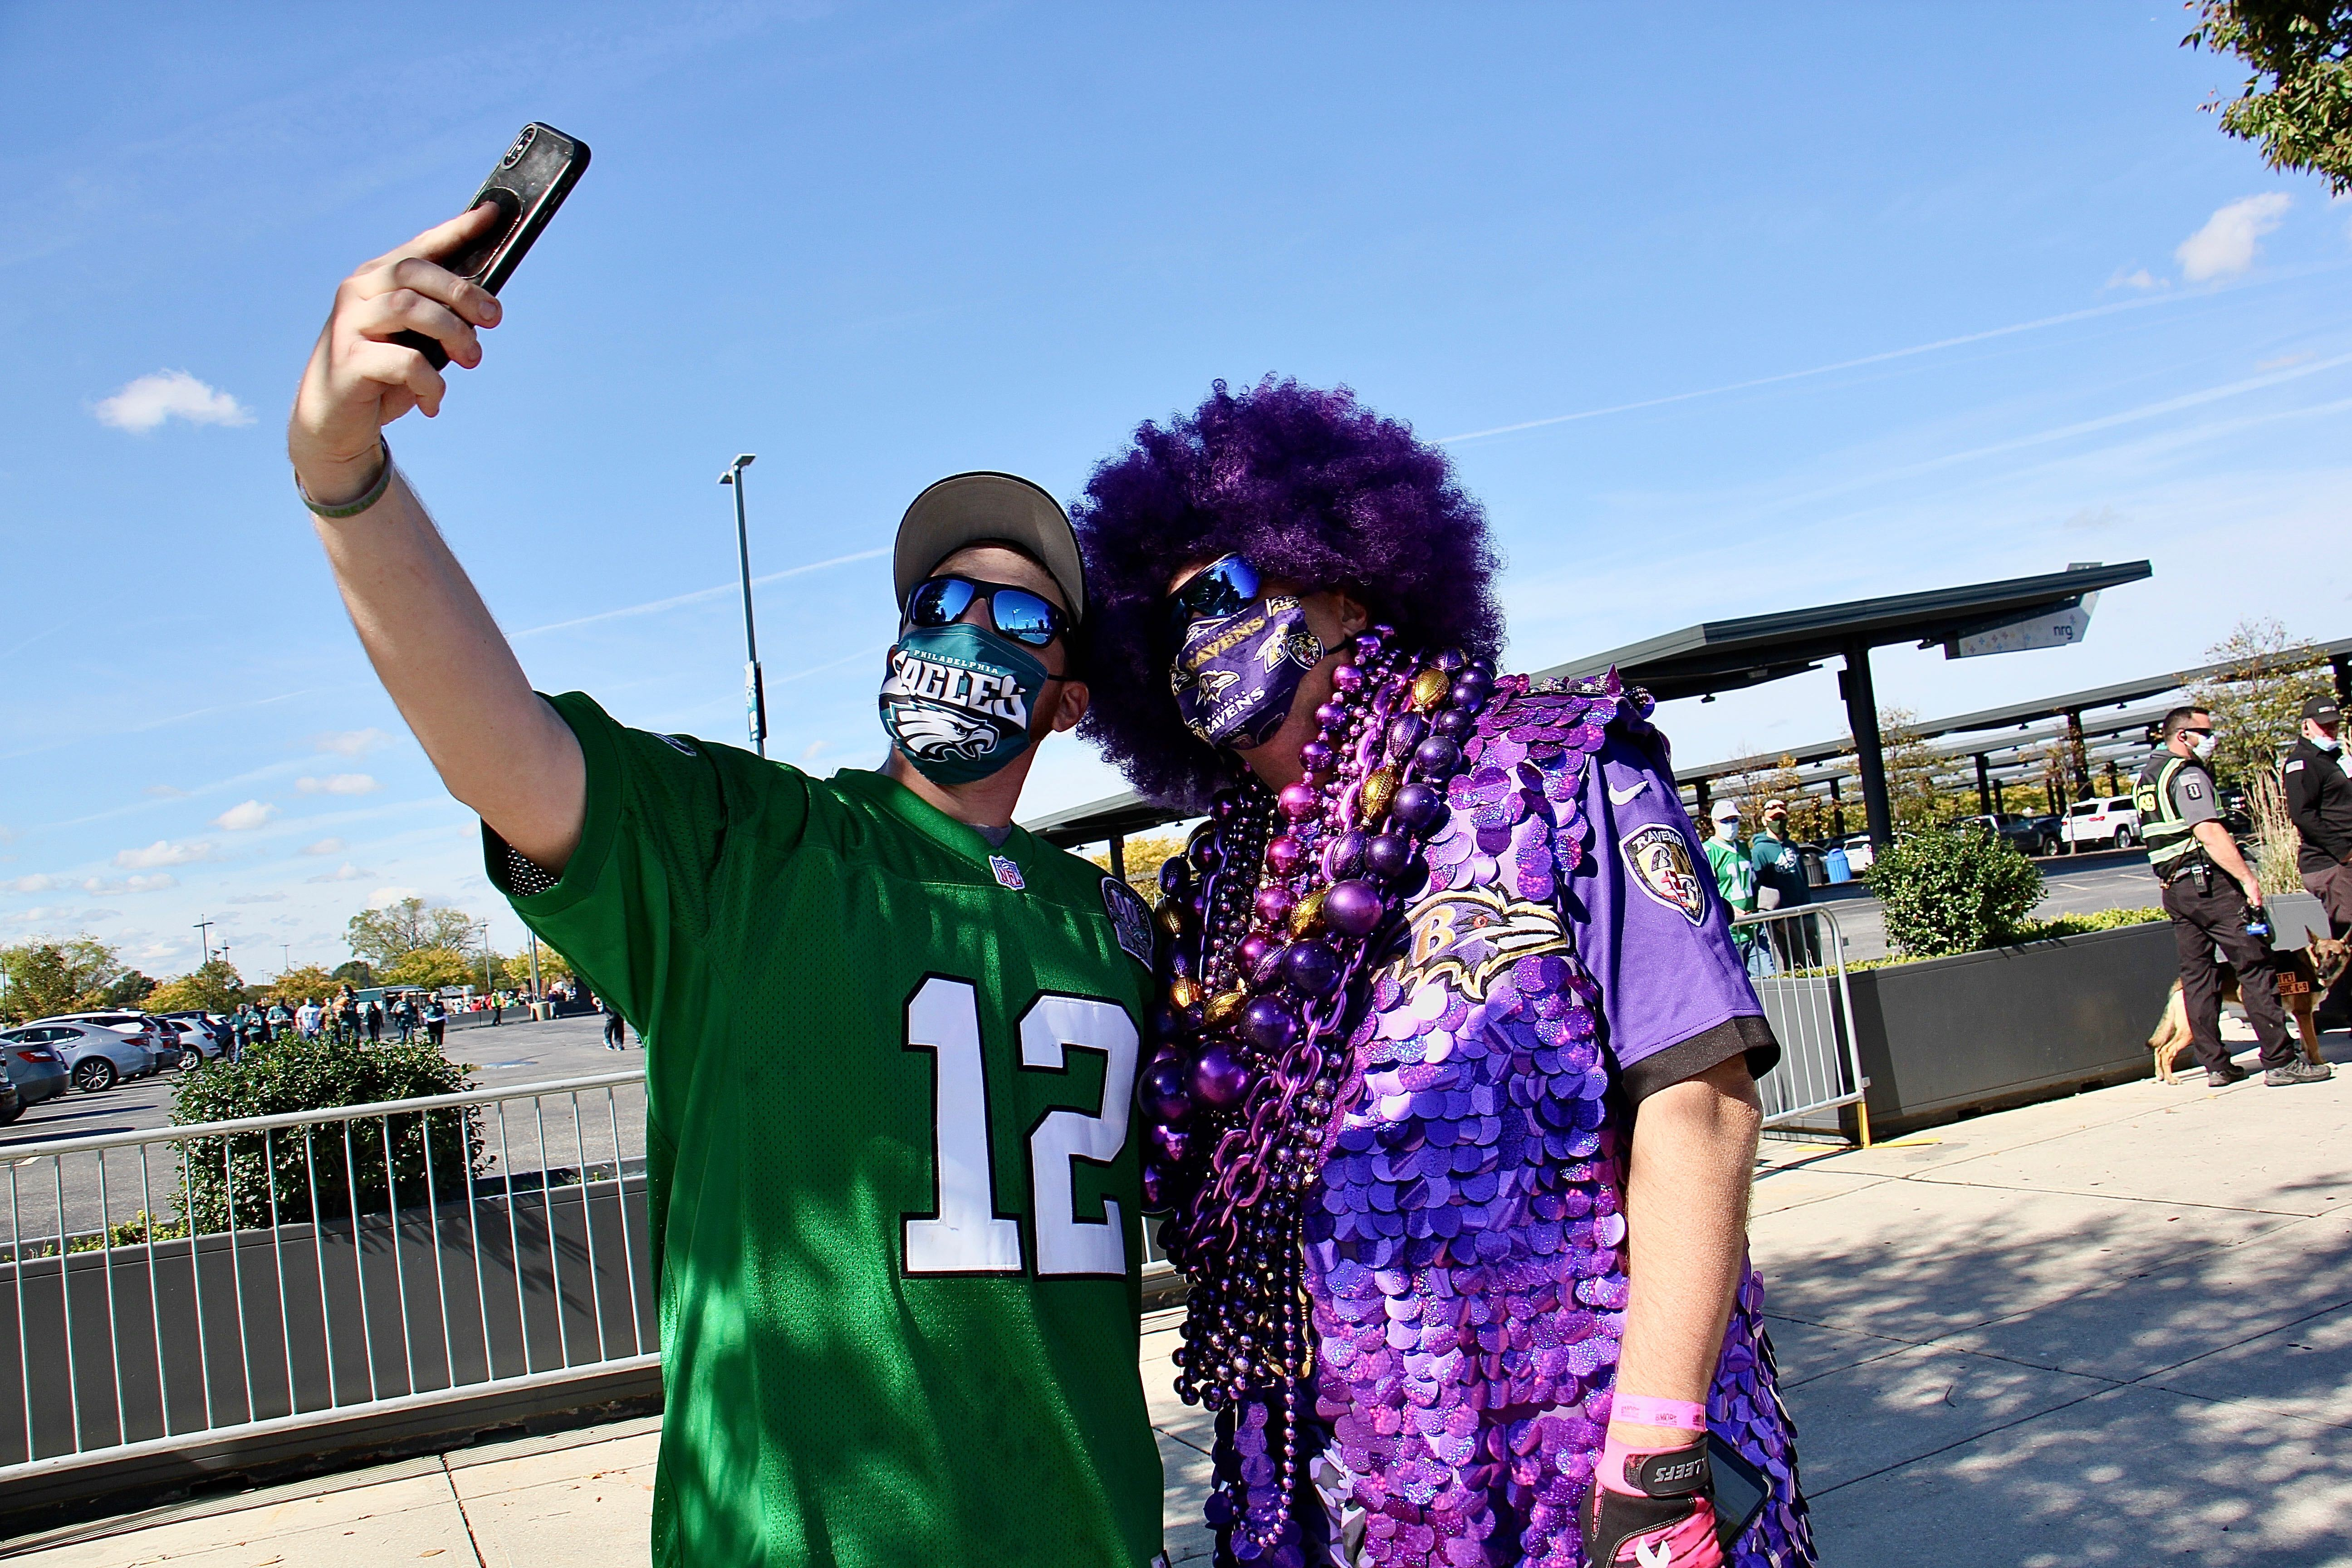 Eagles fan Mike Harbeson stops to take a selfie with elaborately costumed Ravens fan Ken Mioduski